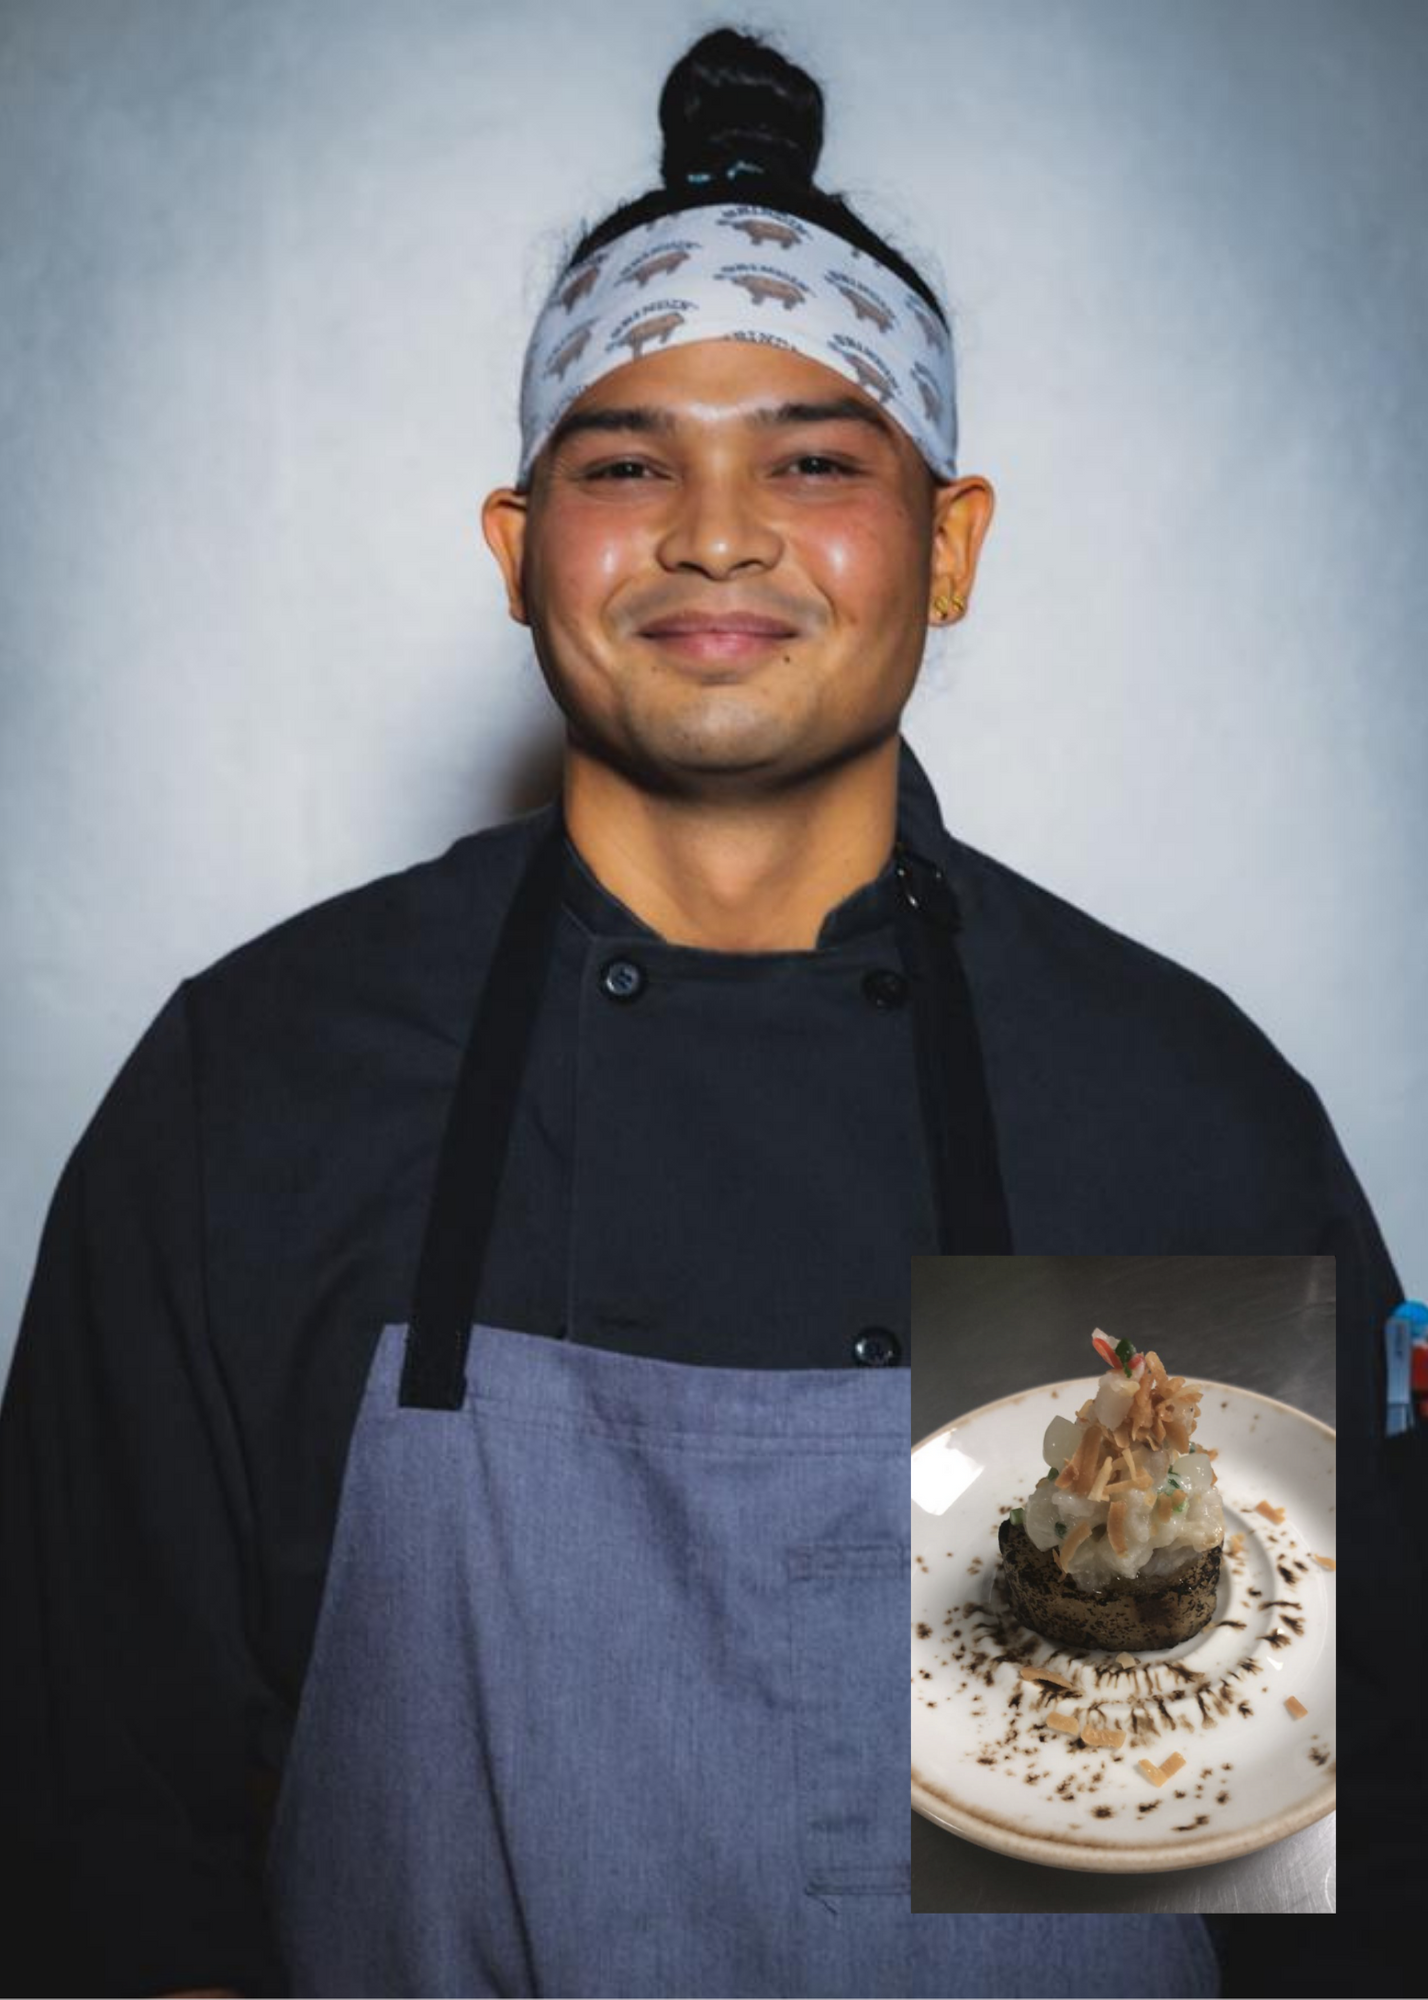 """Chef Gil Quichocho says his apigigi with scallop kelaguen, inset, reflects his culinary journey through its technique, product knowledge, taste and execution. """"It's how I see modern CHamoru cuisine to be, how I would like to present it to the world and put CHamoru cuisine on the map."""""""